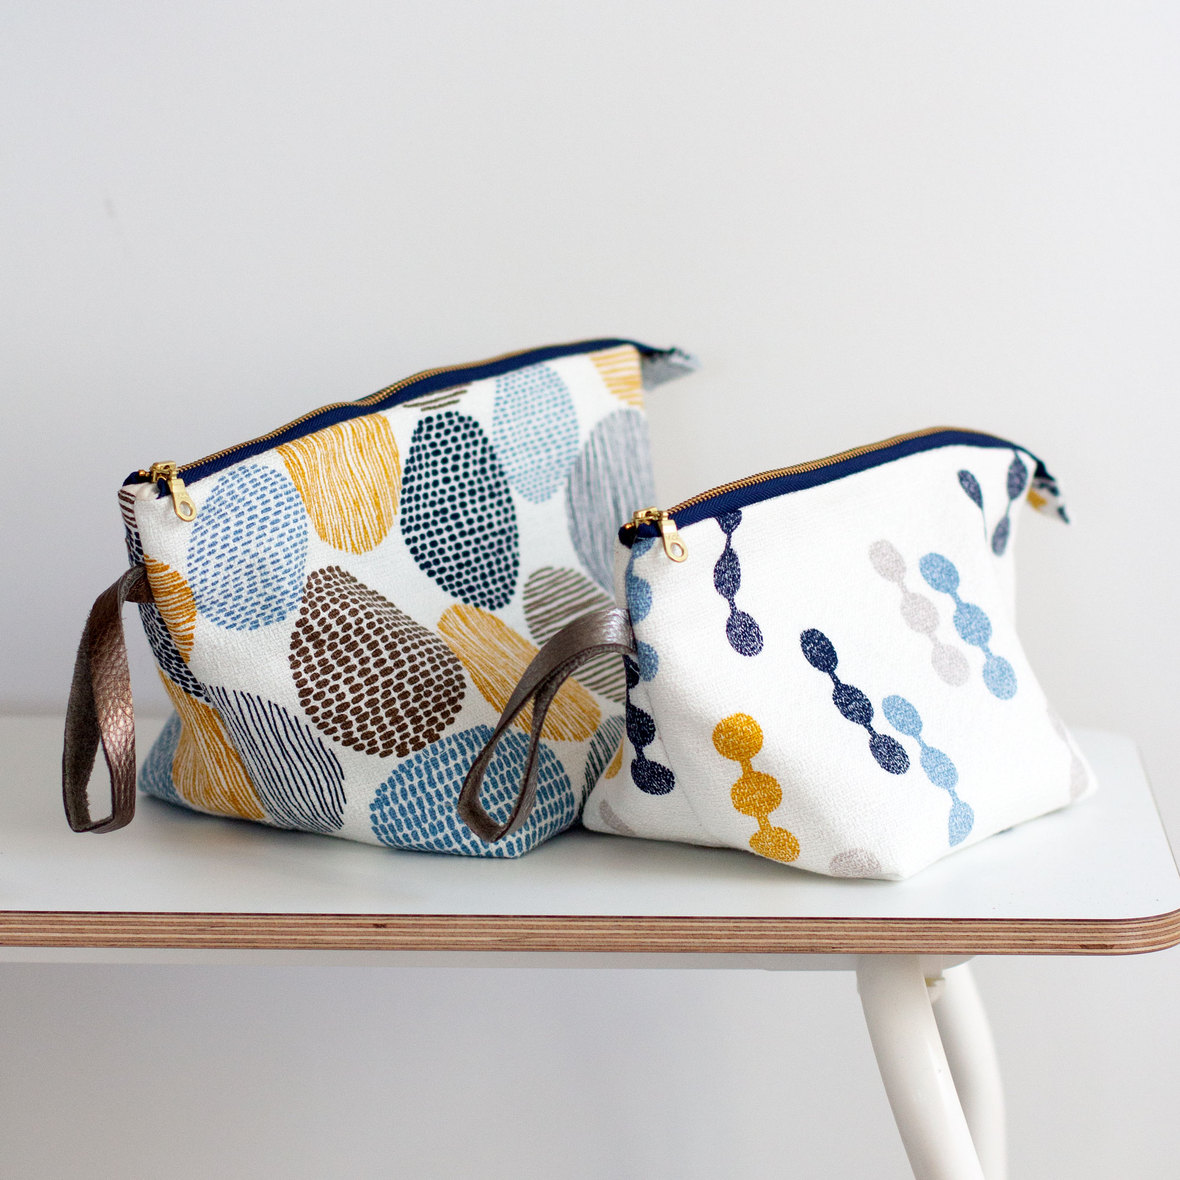 openwide zippered pouch- noodlehead- free tutorial on blog